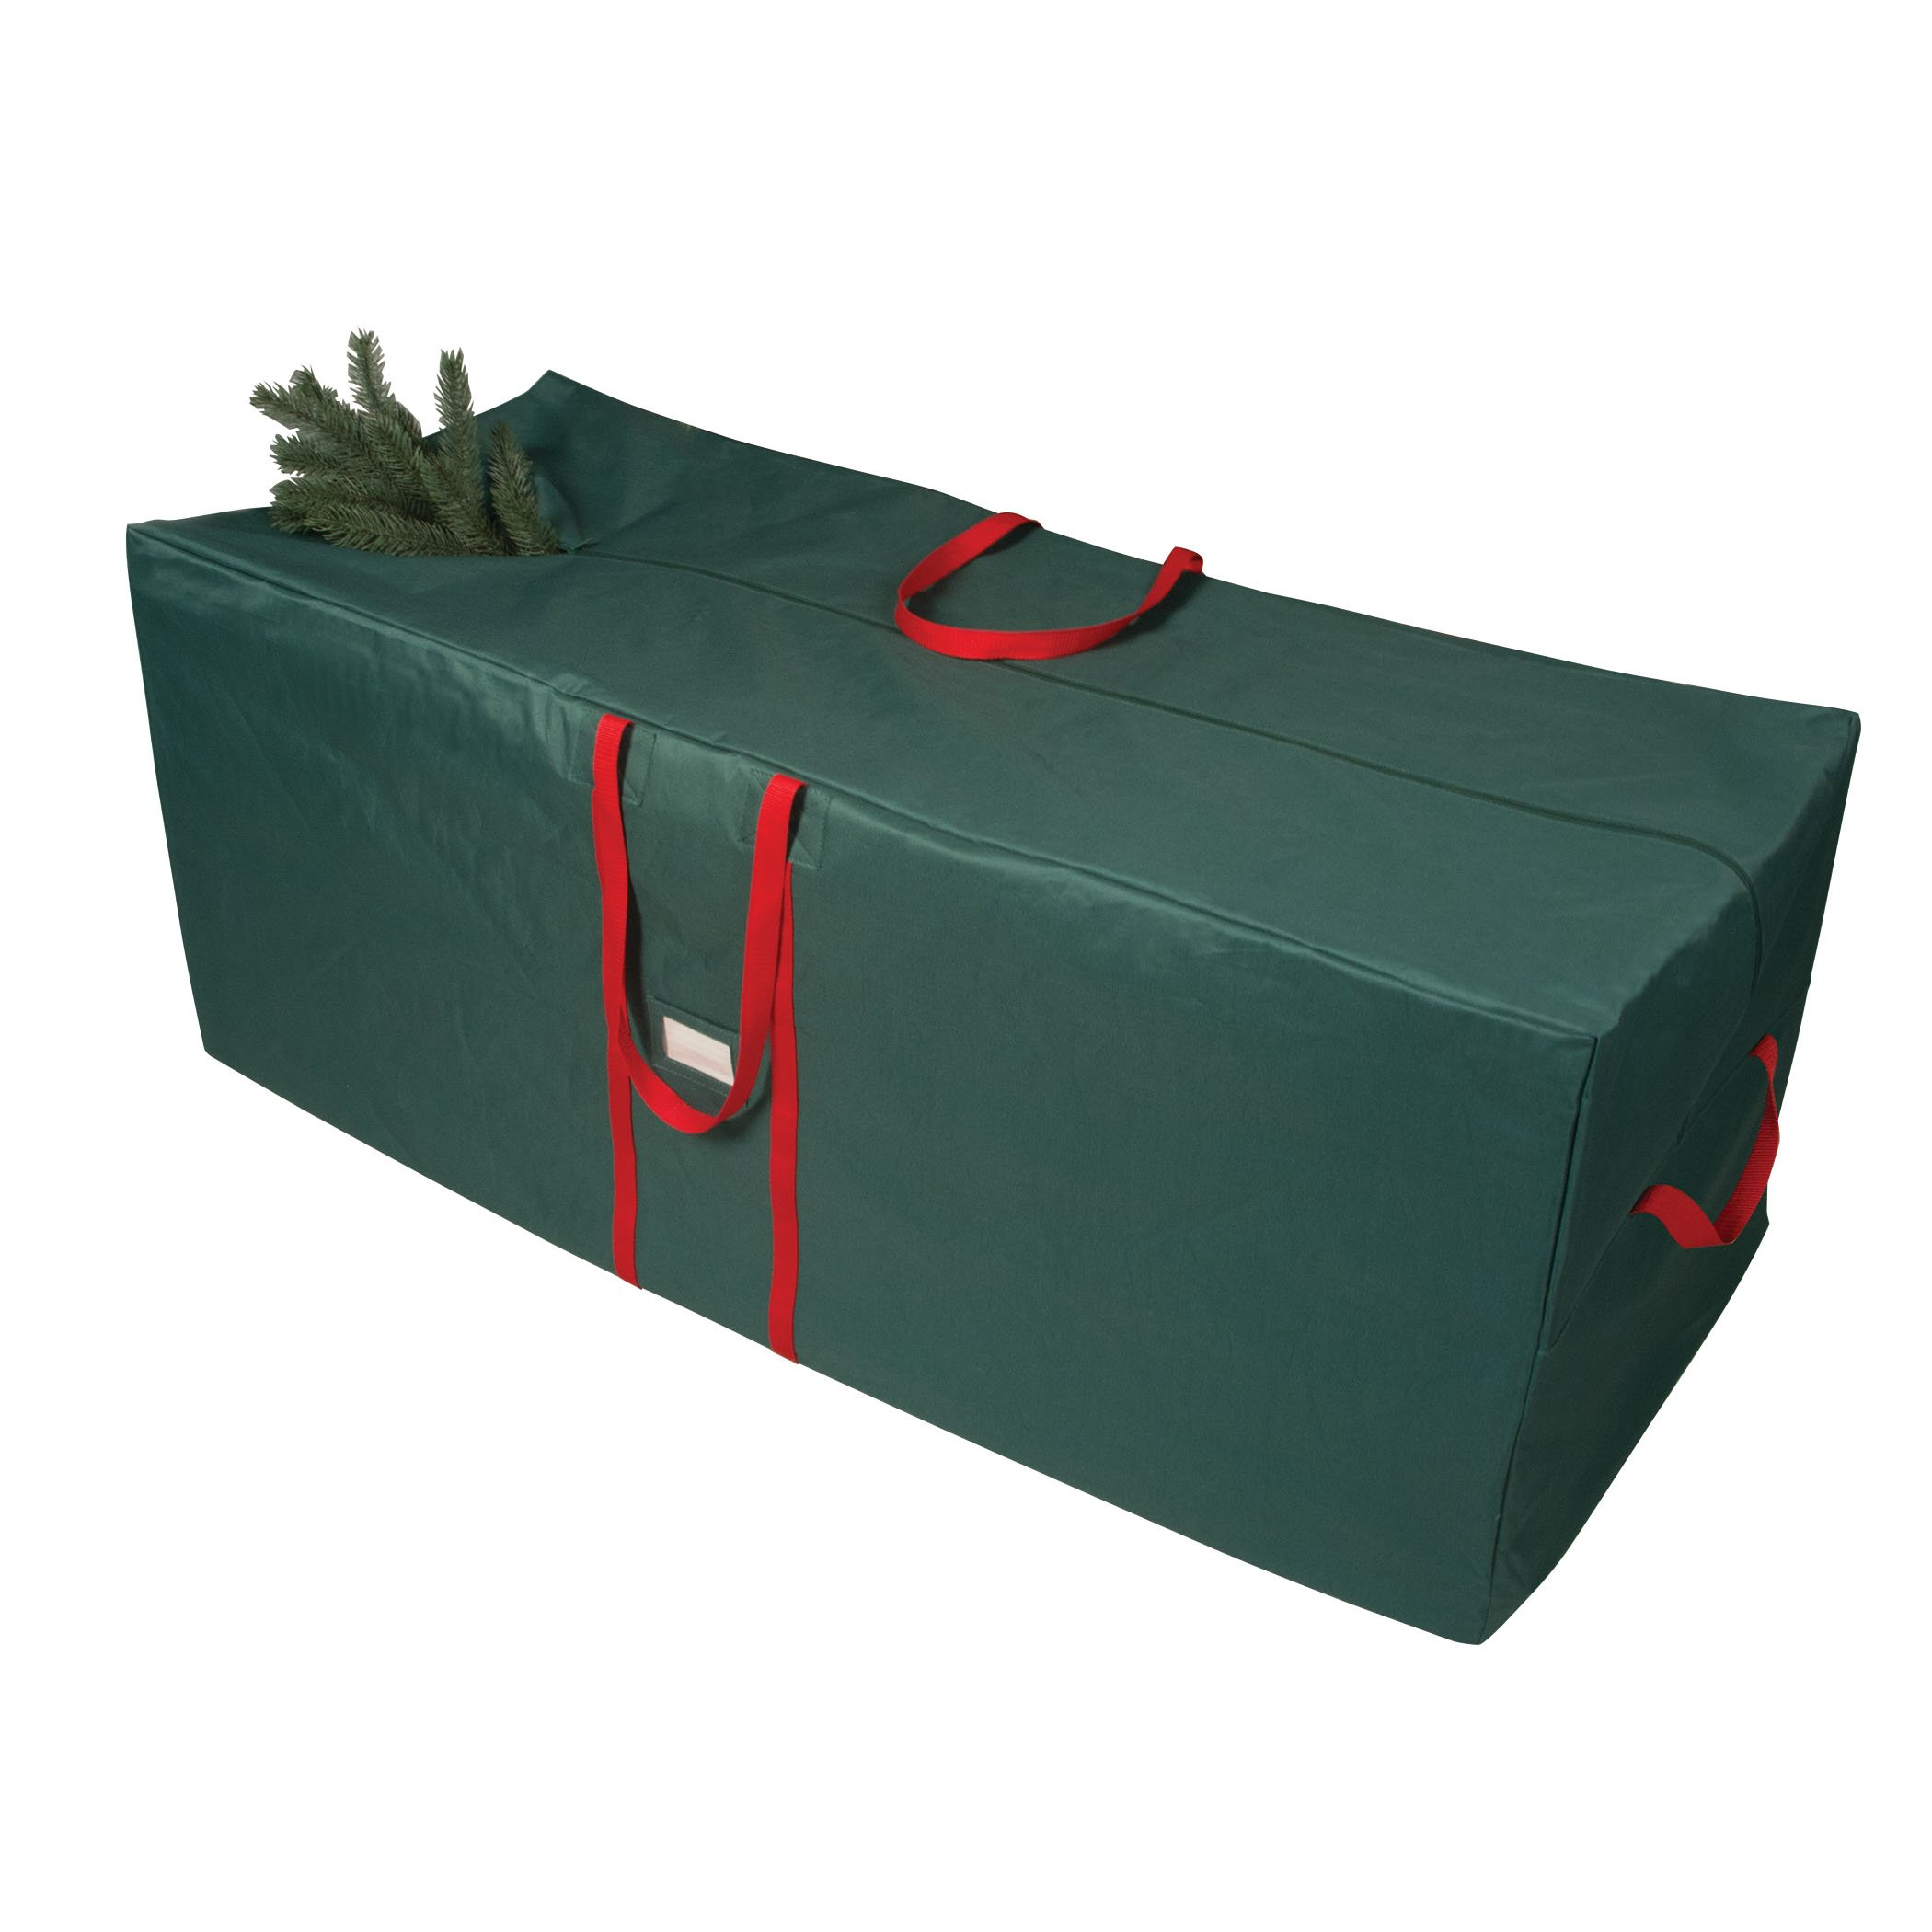 Richards Homewares Green with Red Holiday 58'' Tree Bag with Wheels and Handles